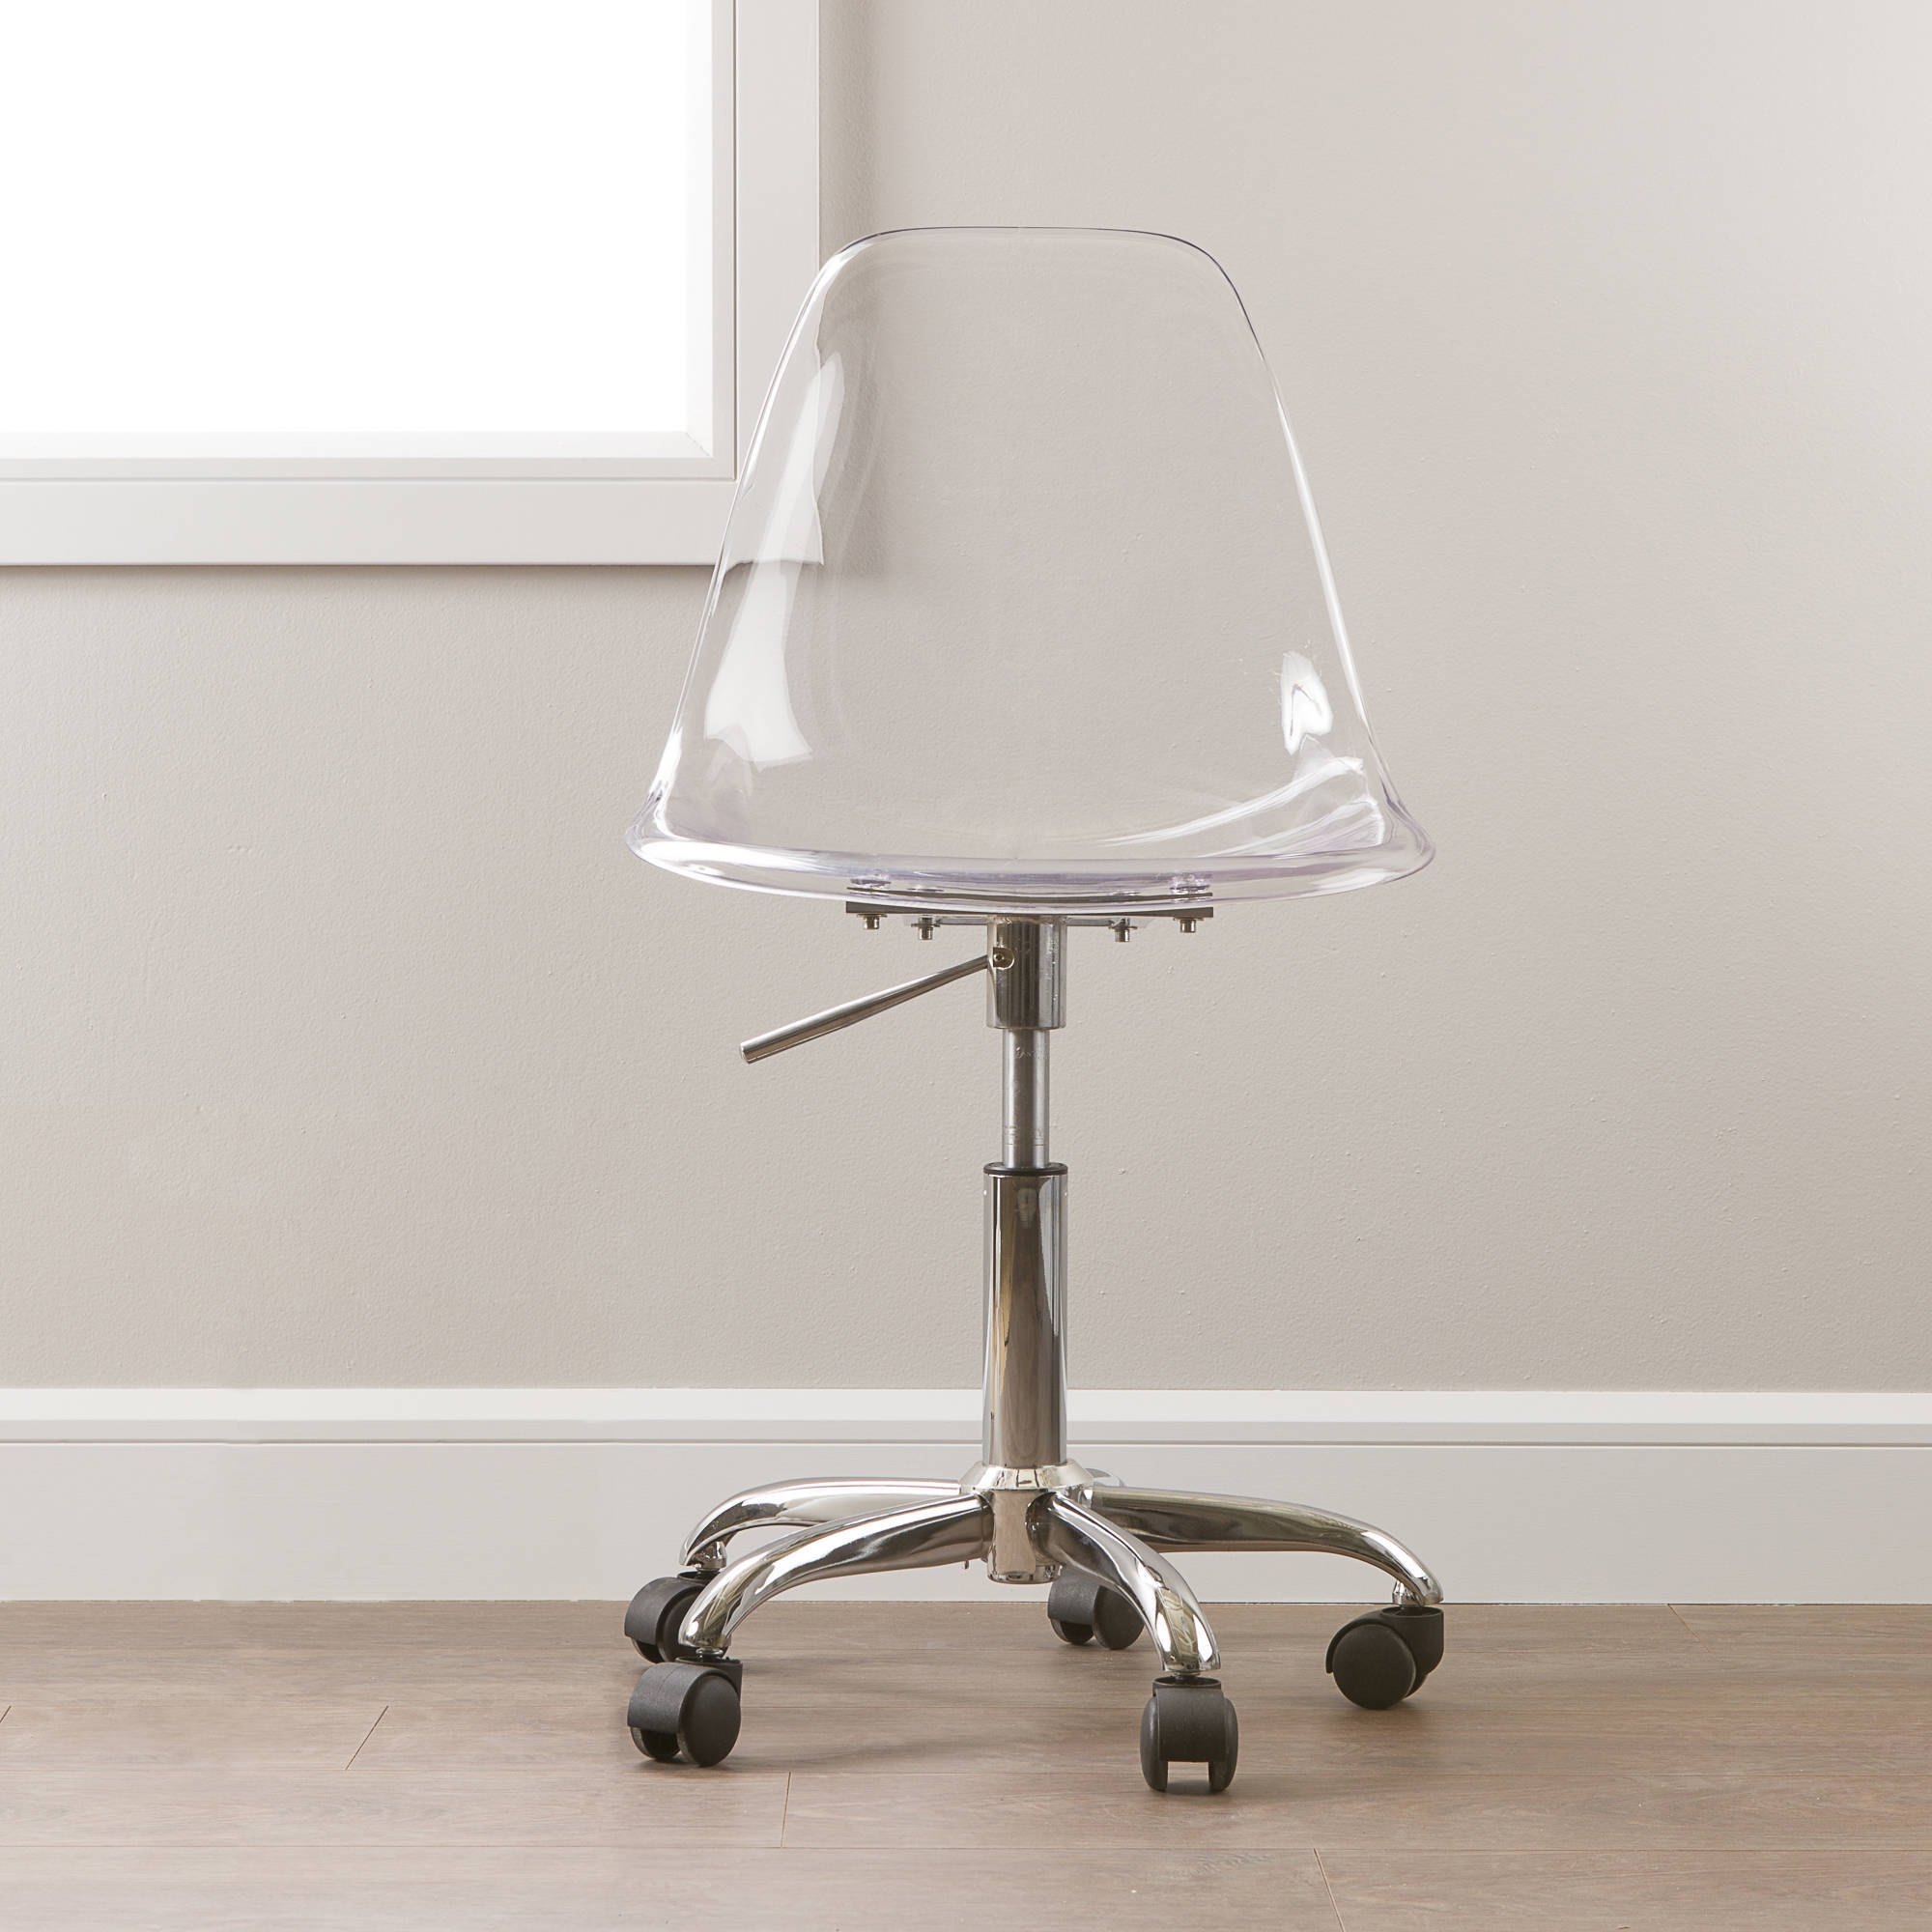 desk chairs on wheels used restaurant tables and for sale south shore annexe clear office chair with multiple colors walmart com